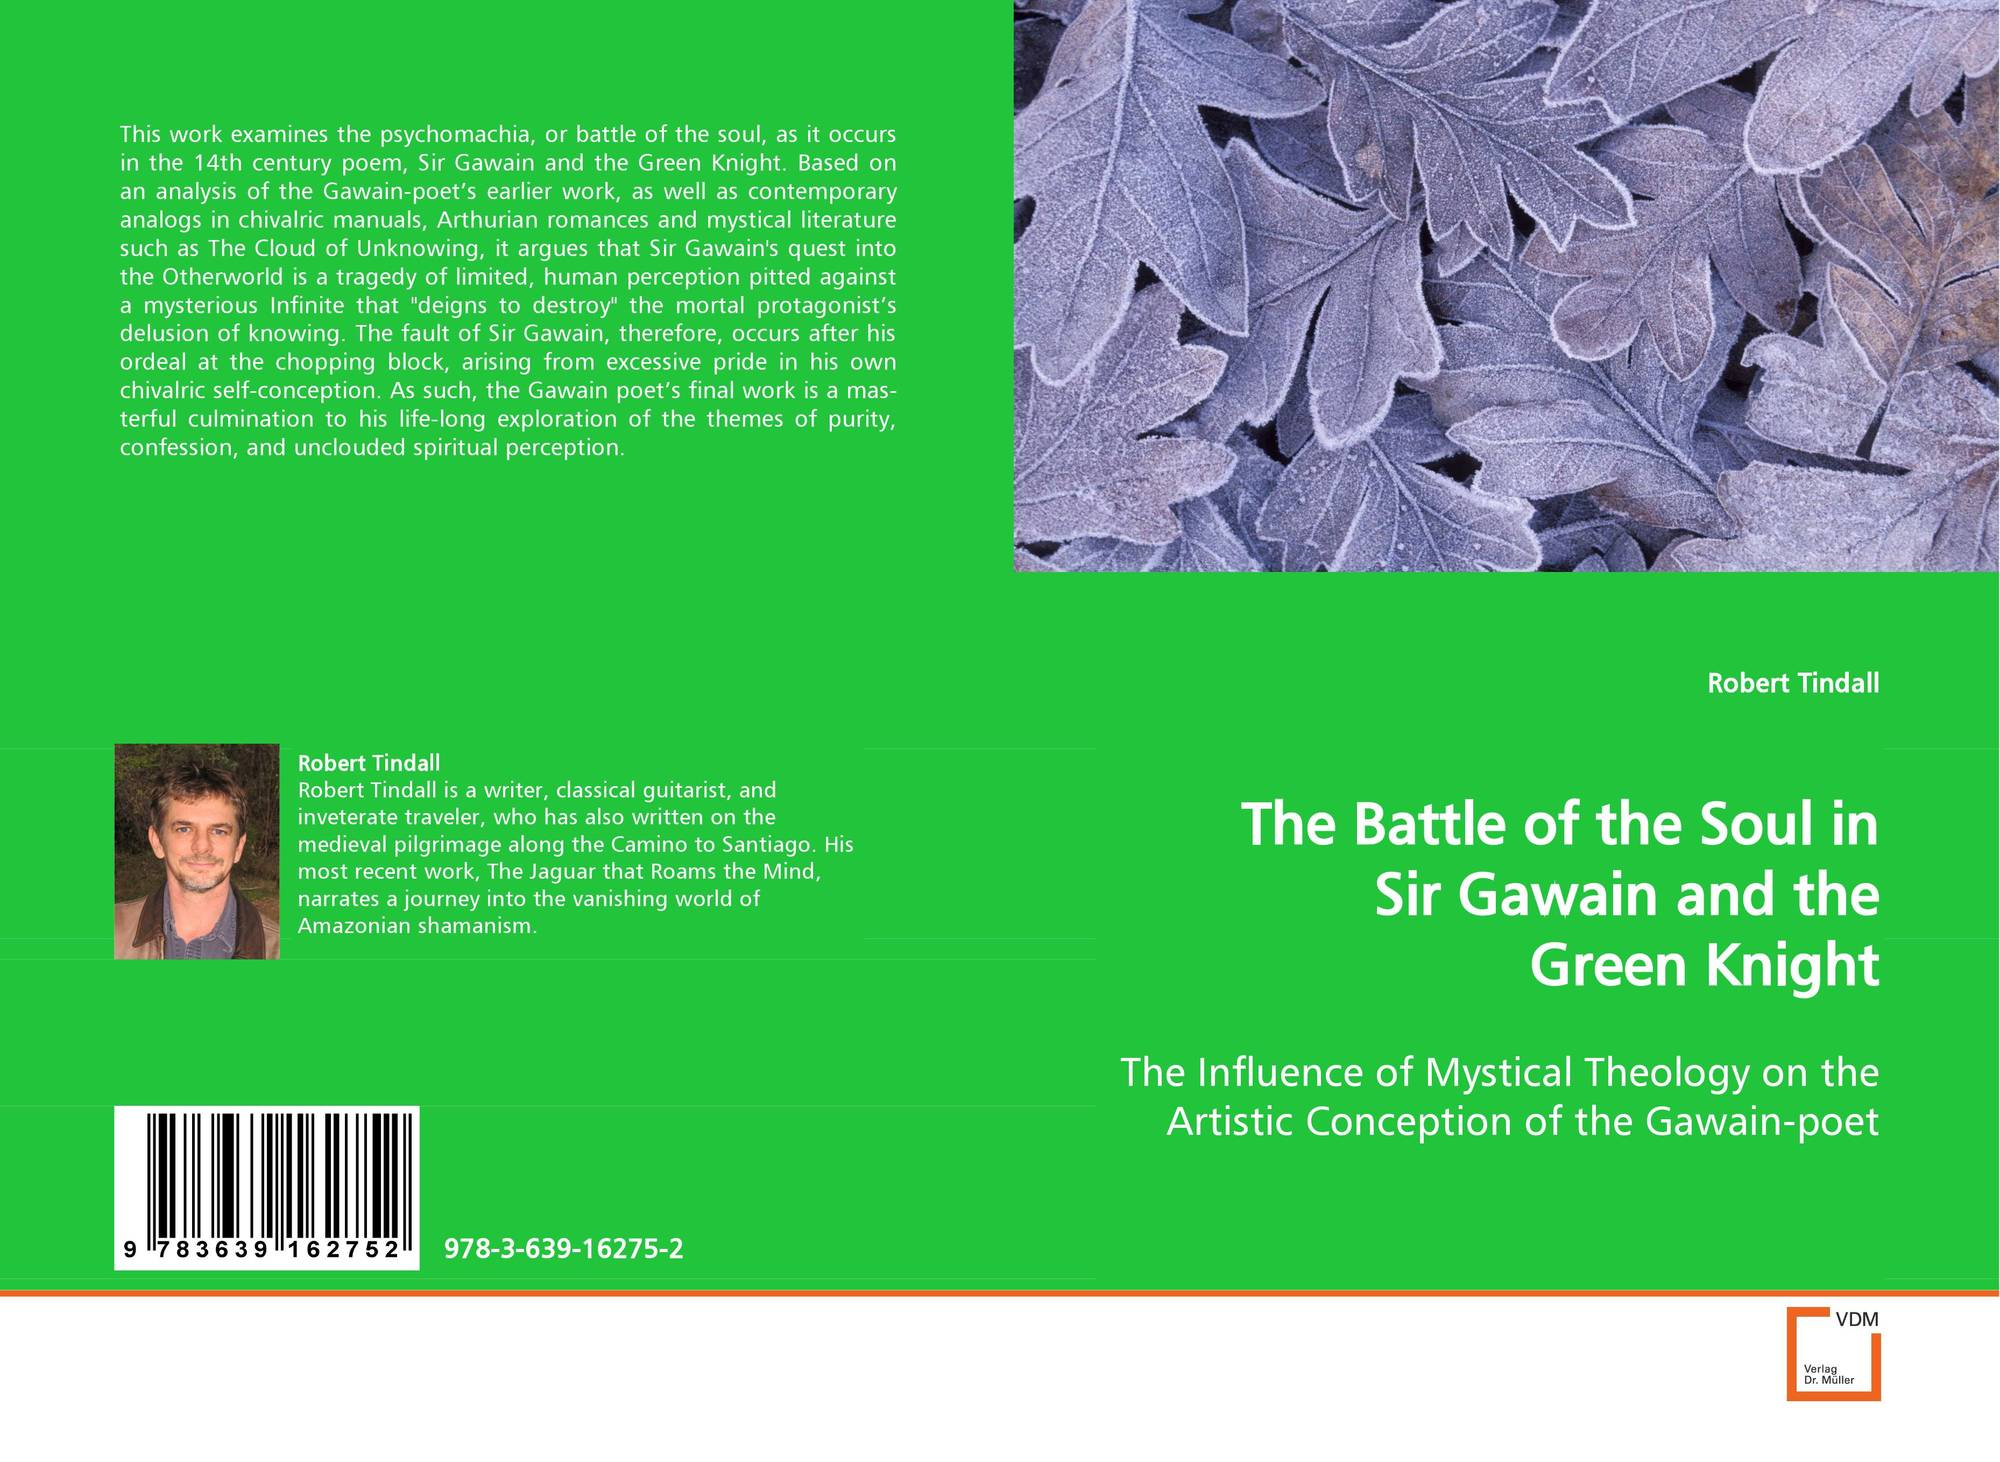 an analysis of the endings of the stories in sir gawain and the green knight and as you like it